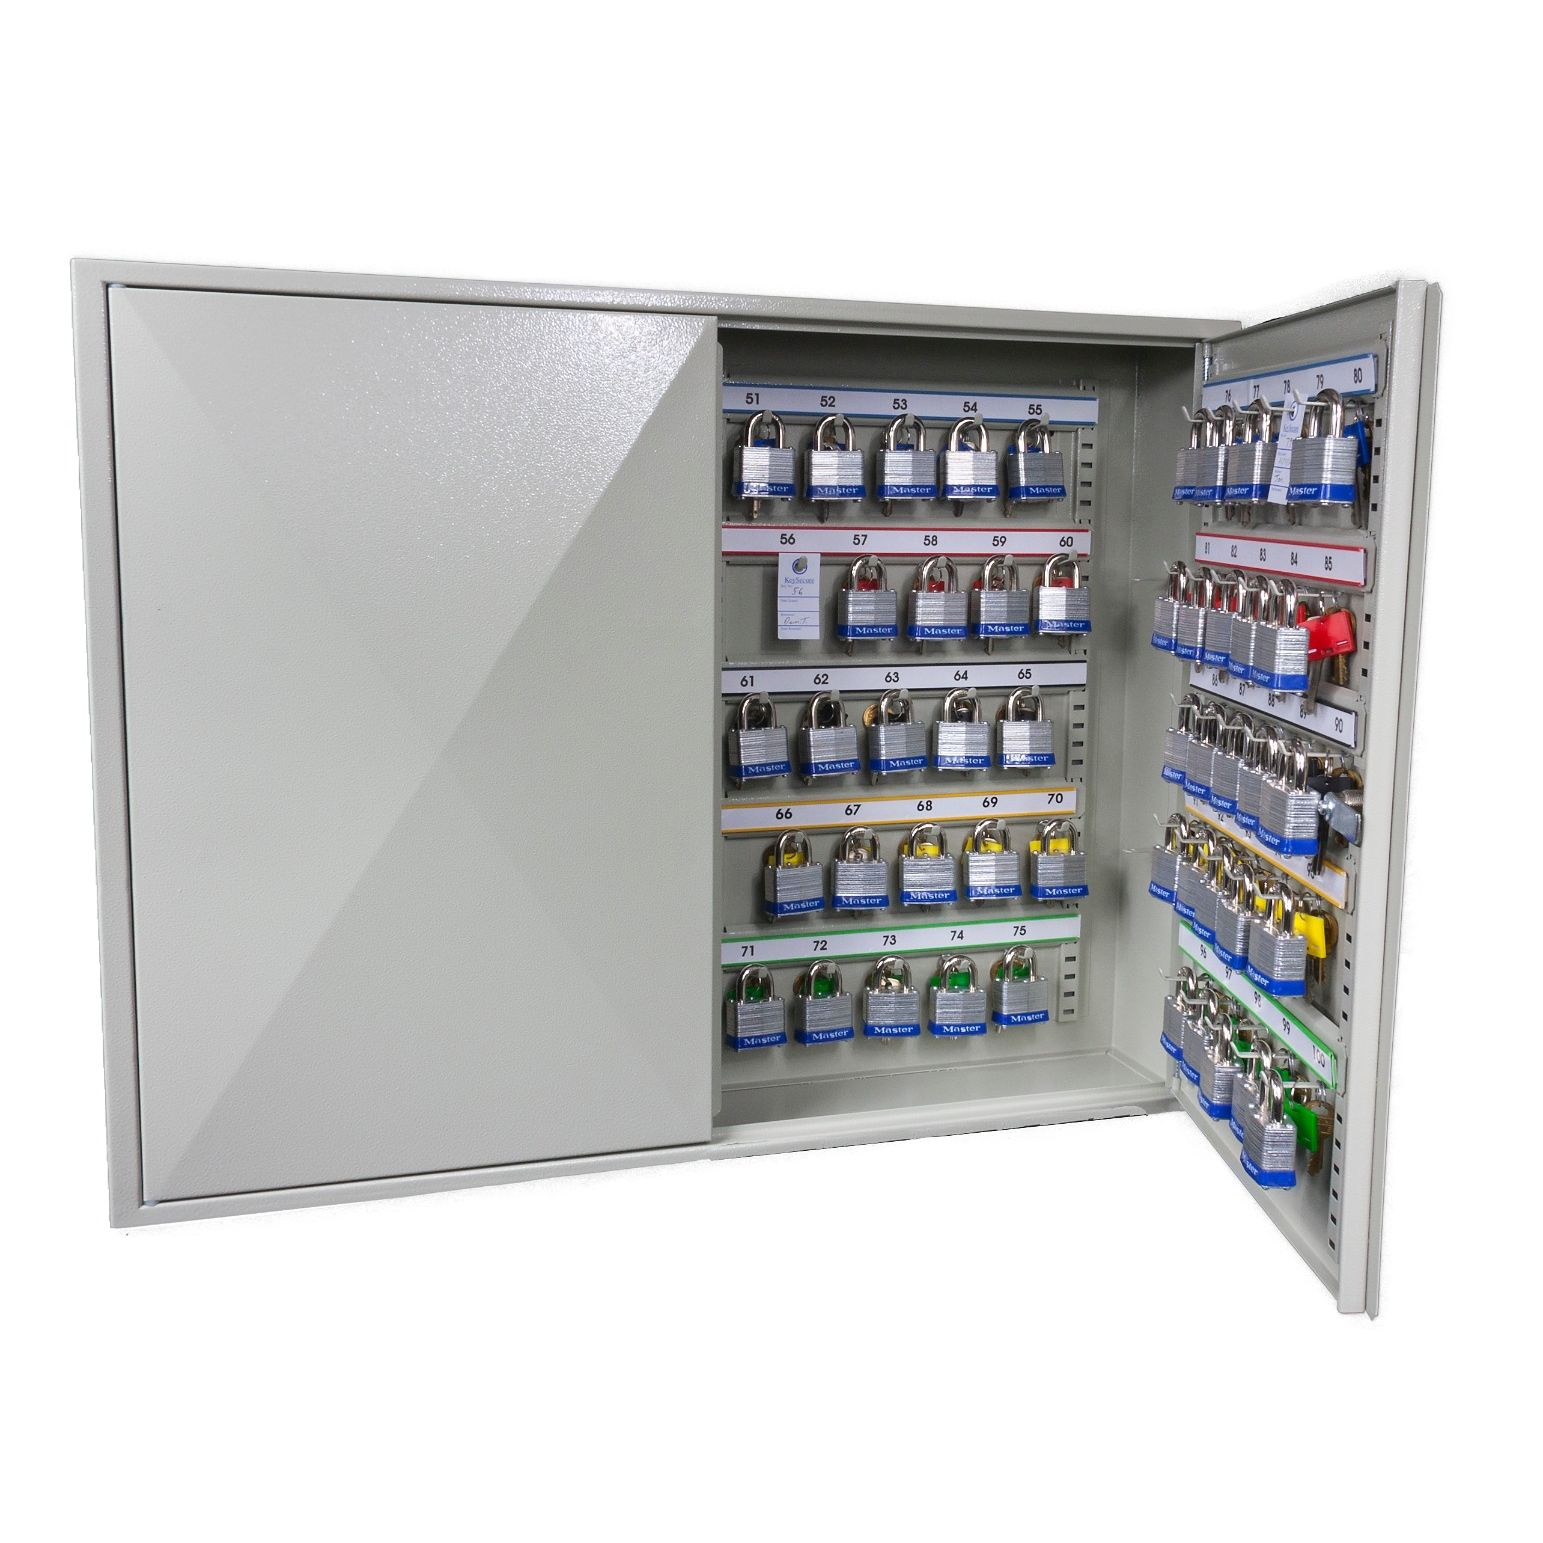 637393090259649655_high_capacity_key_cabinets_with_electronic_cam_lock_100_hook_open.jpg